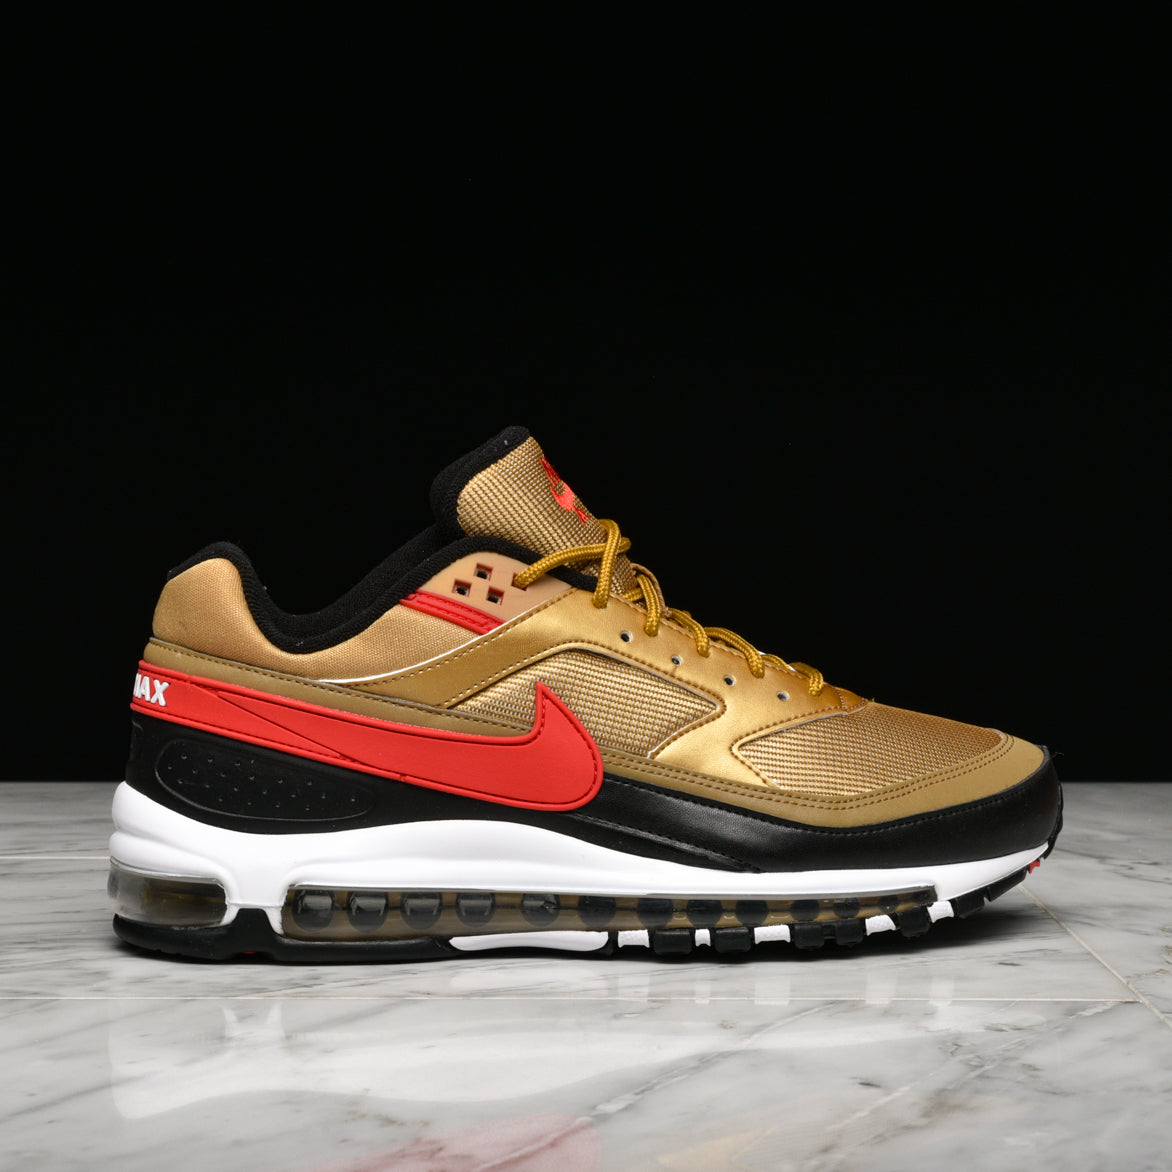 020c488a73a23 AIR MAX 97 BW - METALLIC GOLD   UNIVERSITY RED